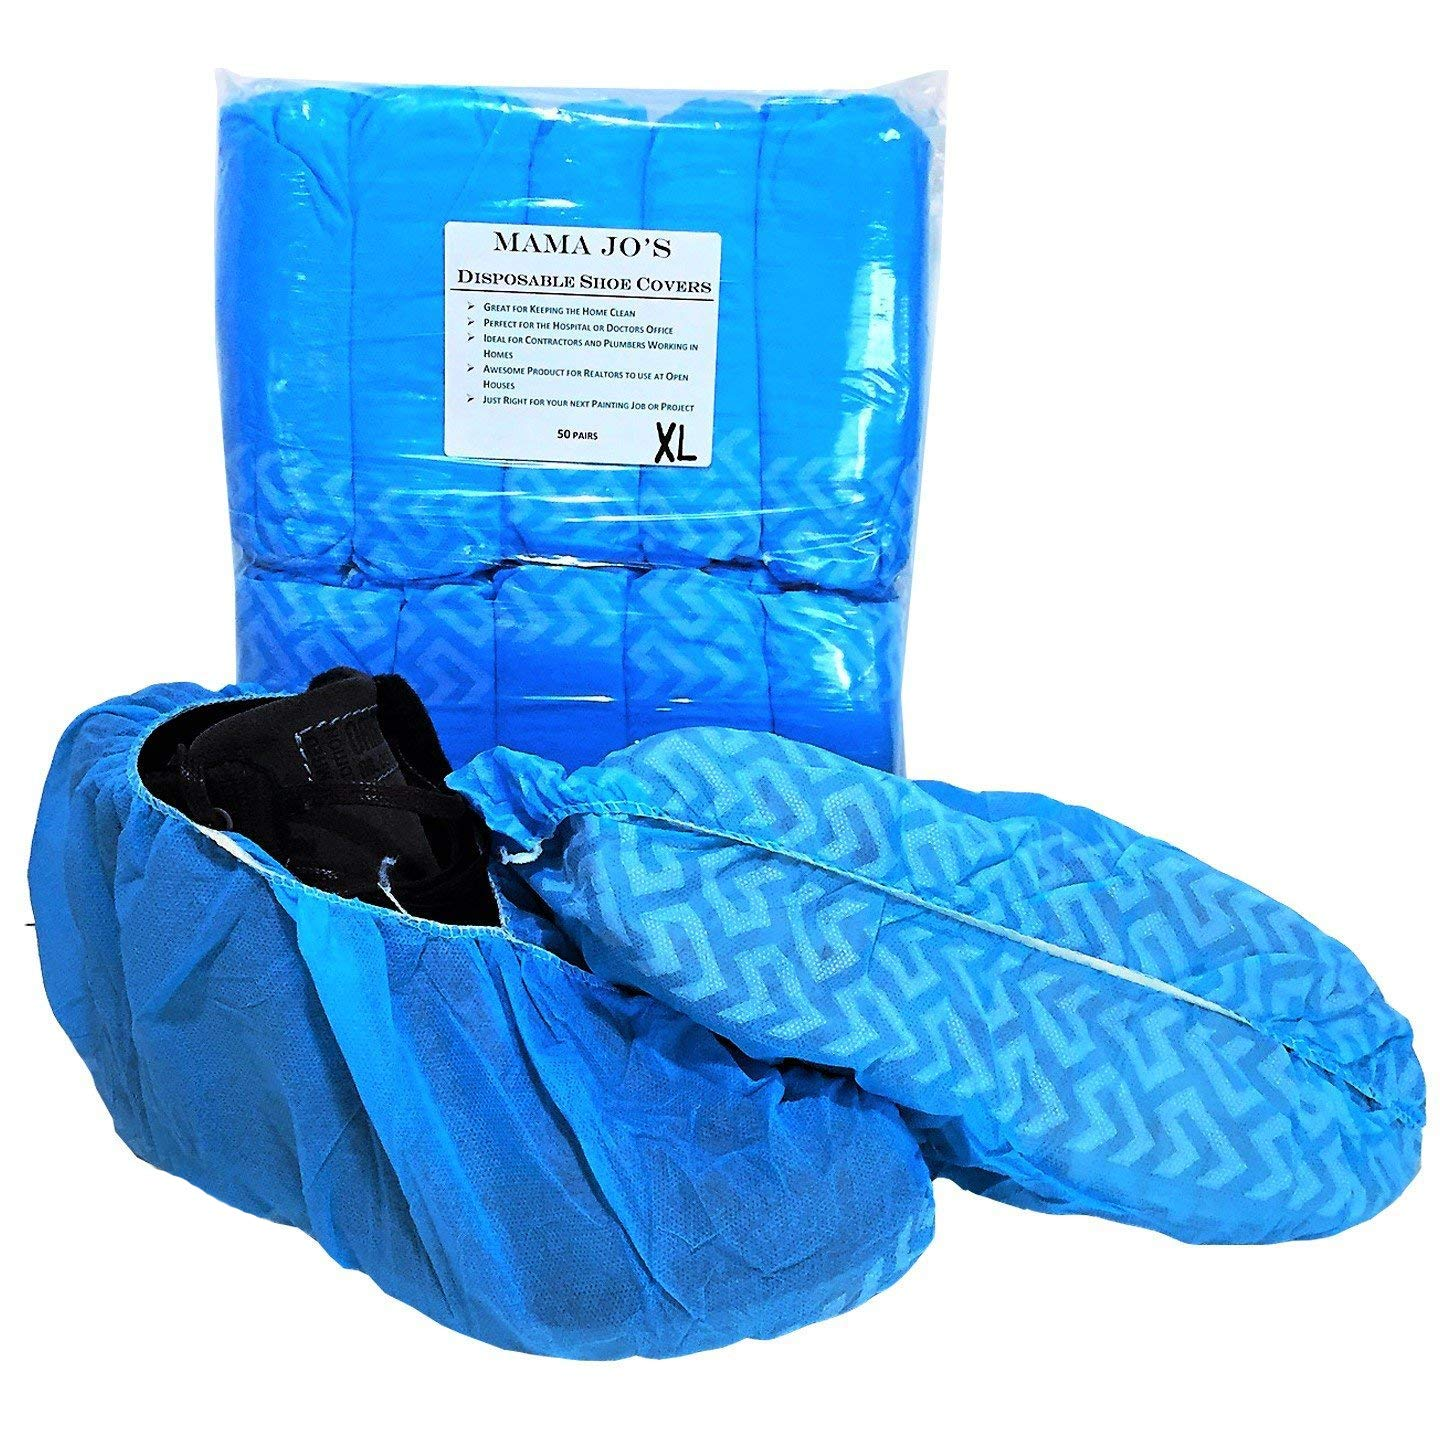 bb2fb82740fe XL Disposable Boot Shoe Covers - Fits All Shoe Sizes From Size 5 to 15 -  Made for Extra Large Wide Shoes and Work Boots - 100 Booties Per Pack - -  Amazon. ...